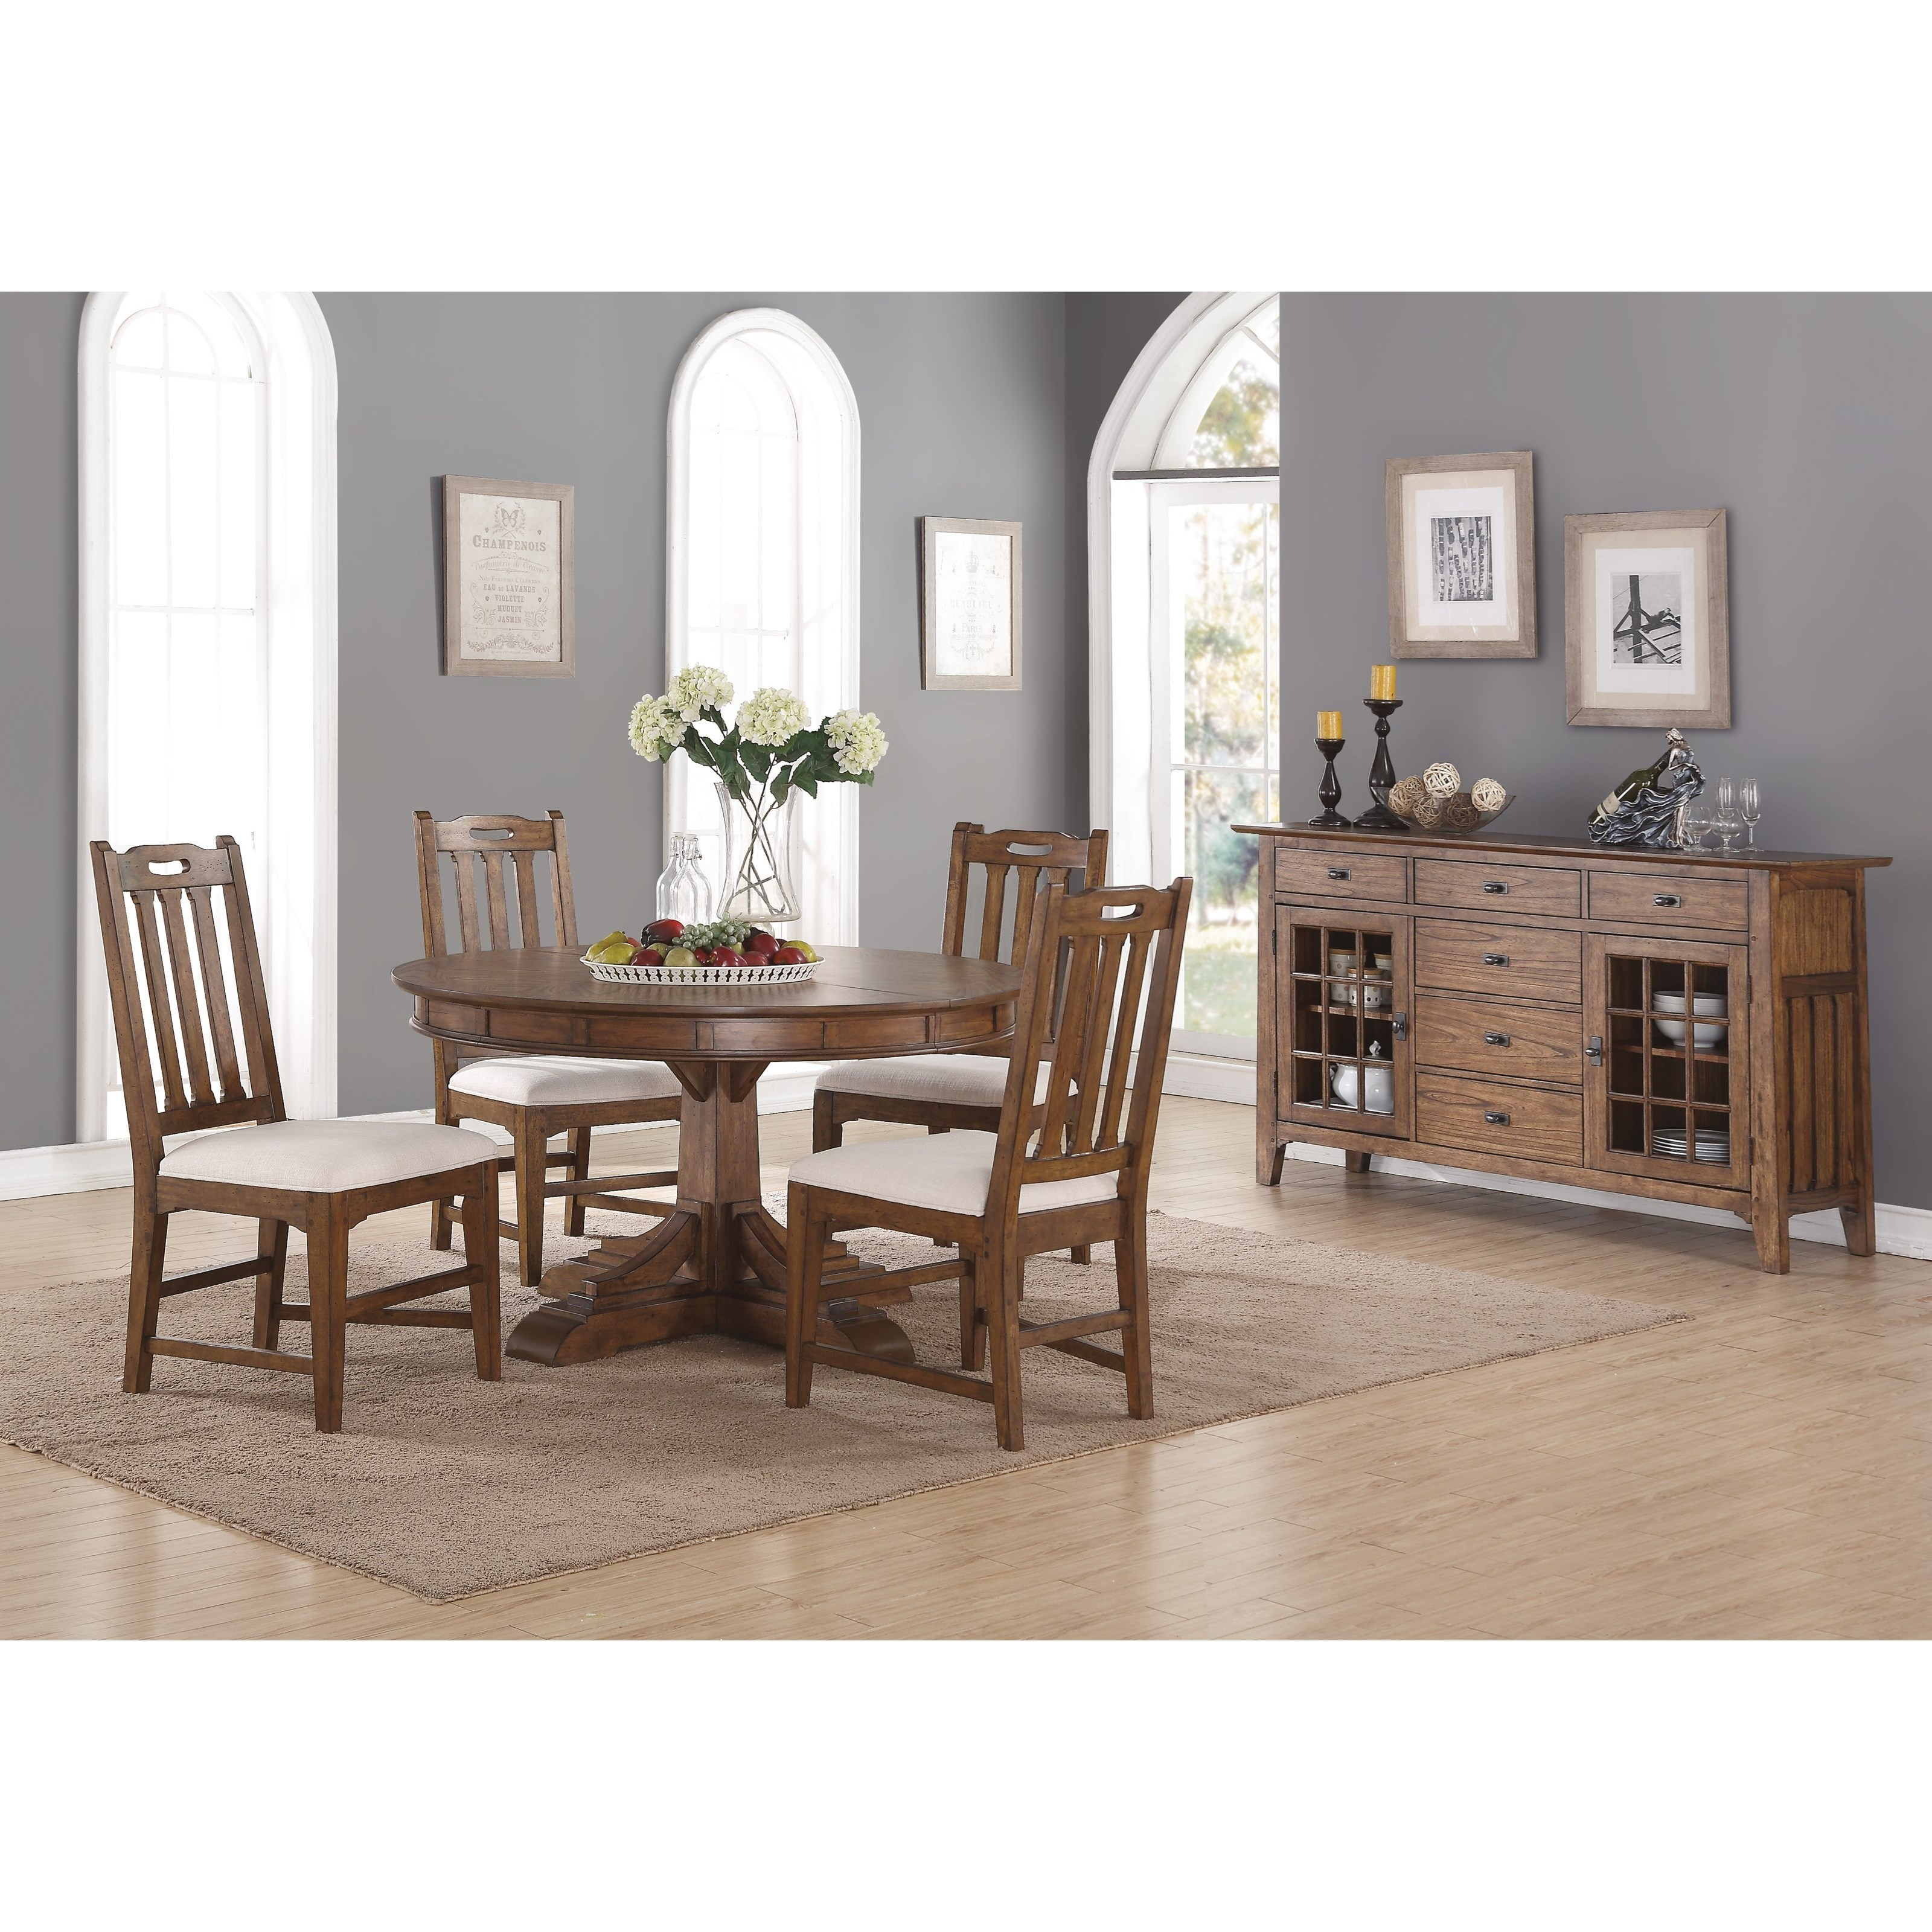 Flexsteel Wynwood Collection Sonora Casual Dining Room Group With  Upholstered Chairs   John V Schultz Furniture   Casual Dining Room Groups